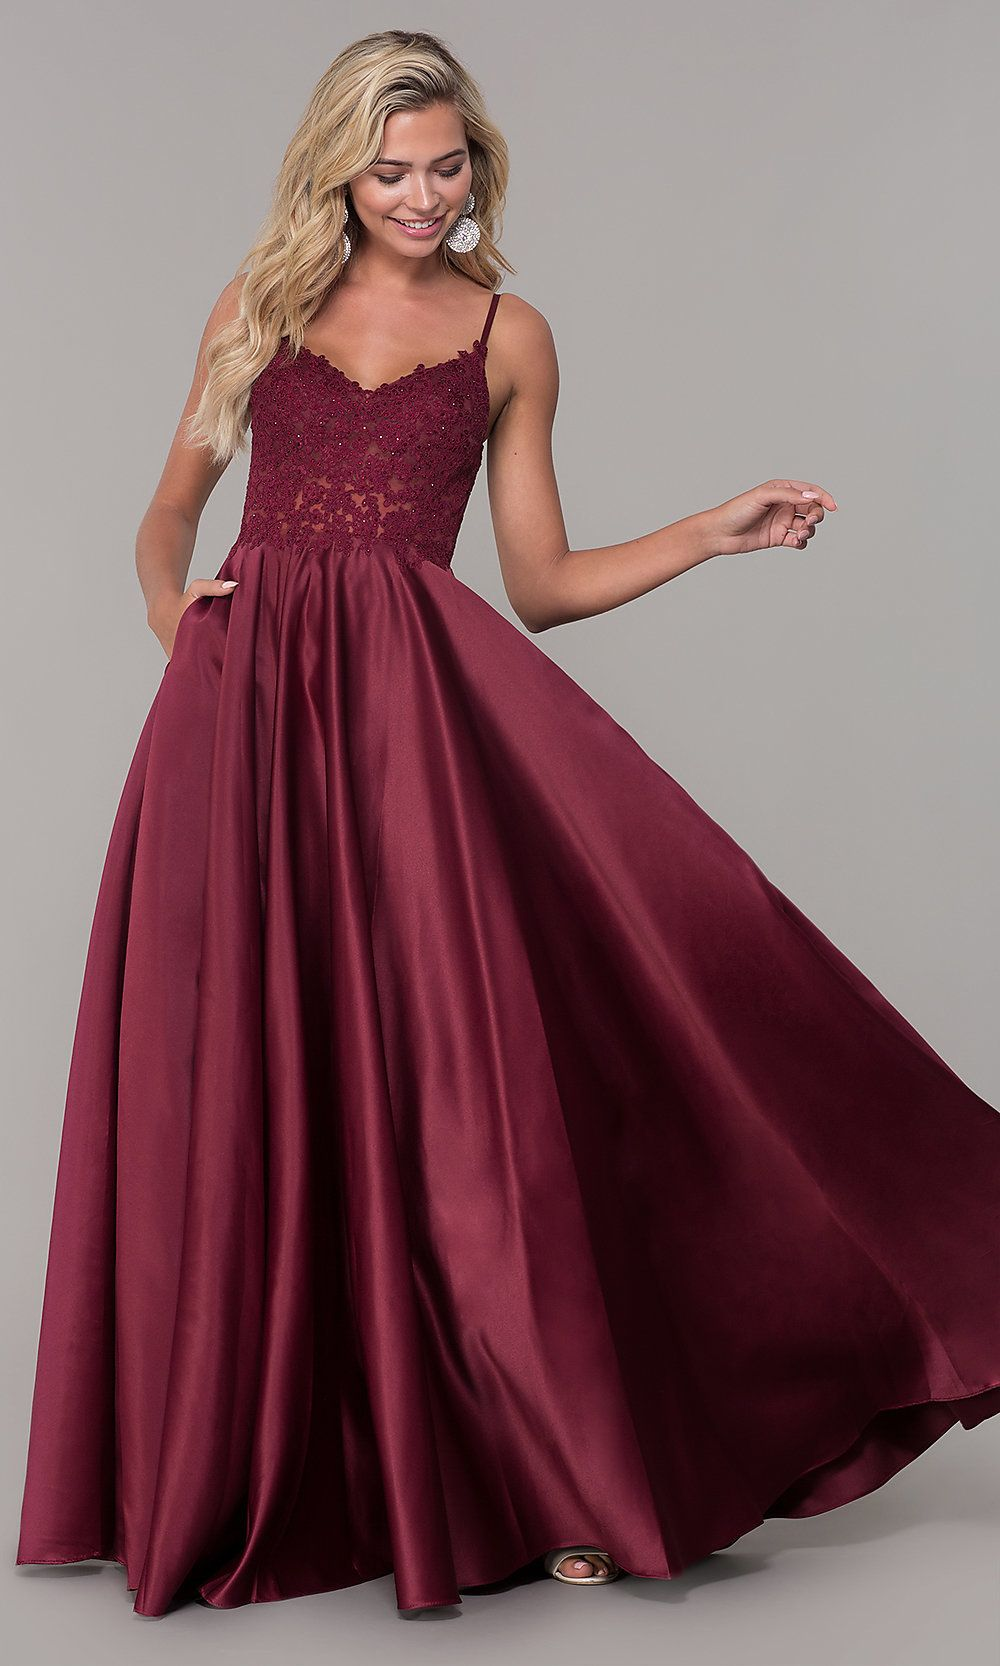 1b5669d140b Satin Prom Dress with Embroidered Bodice - PromGirl